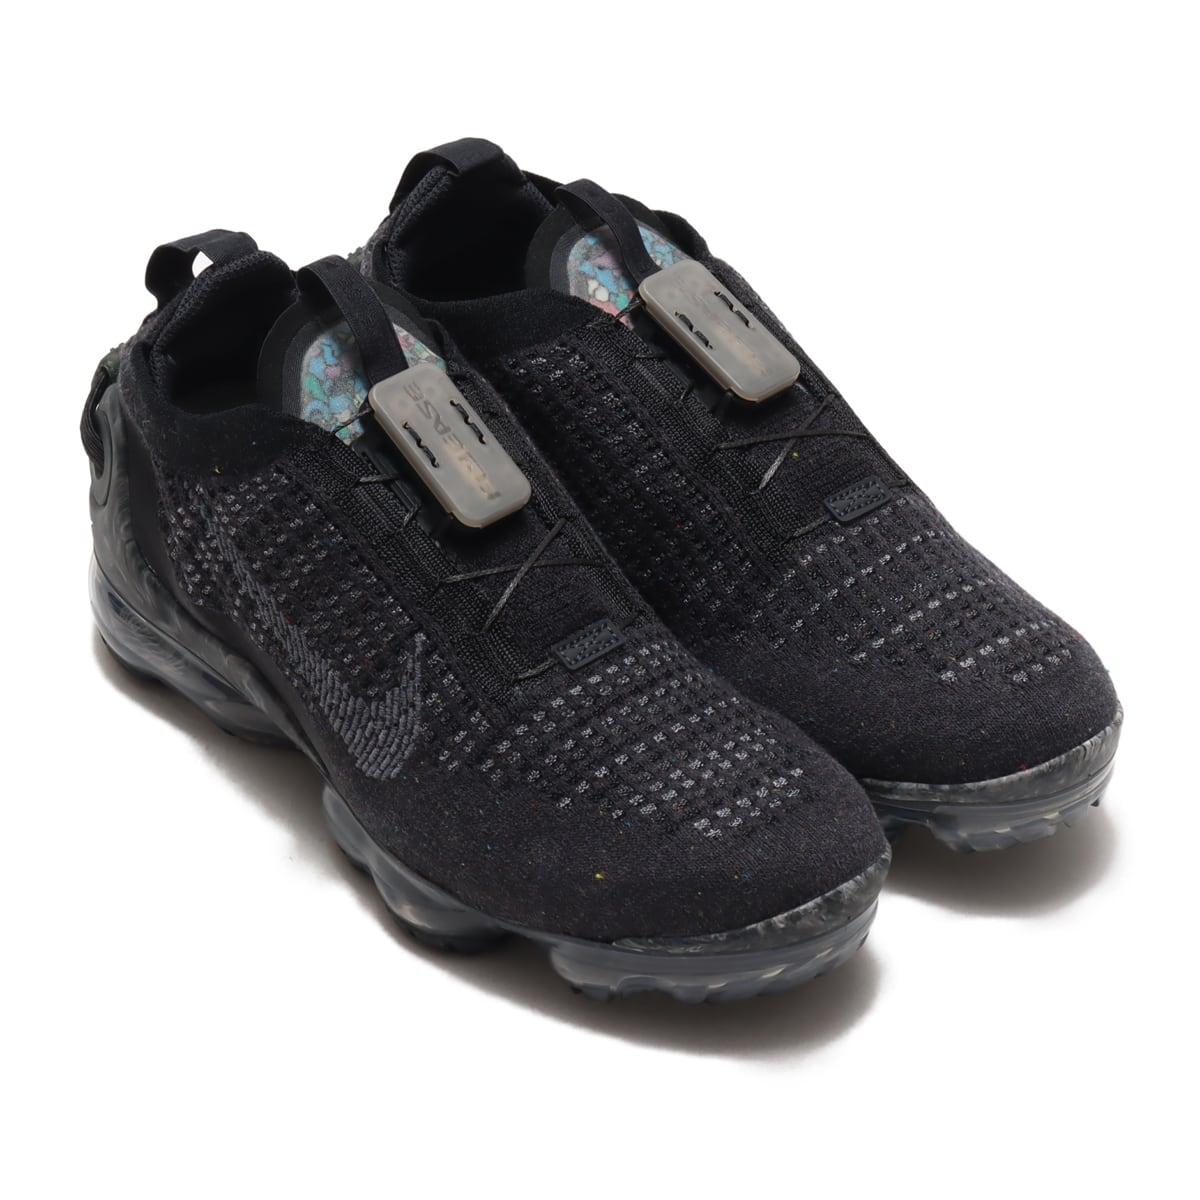 NIKE AIR VAPORMAX 2020 FK BLACK/DARK GREY-BLACK 20HO-I_photo_large